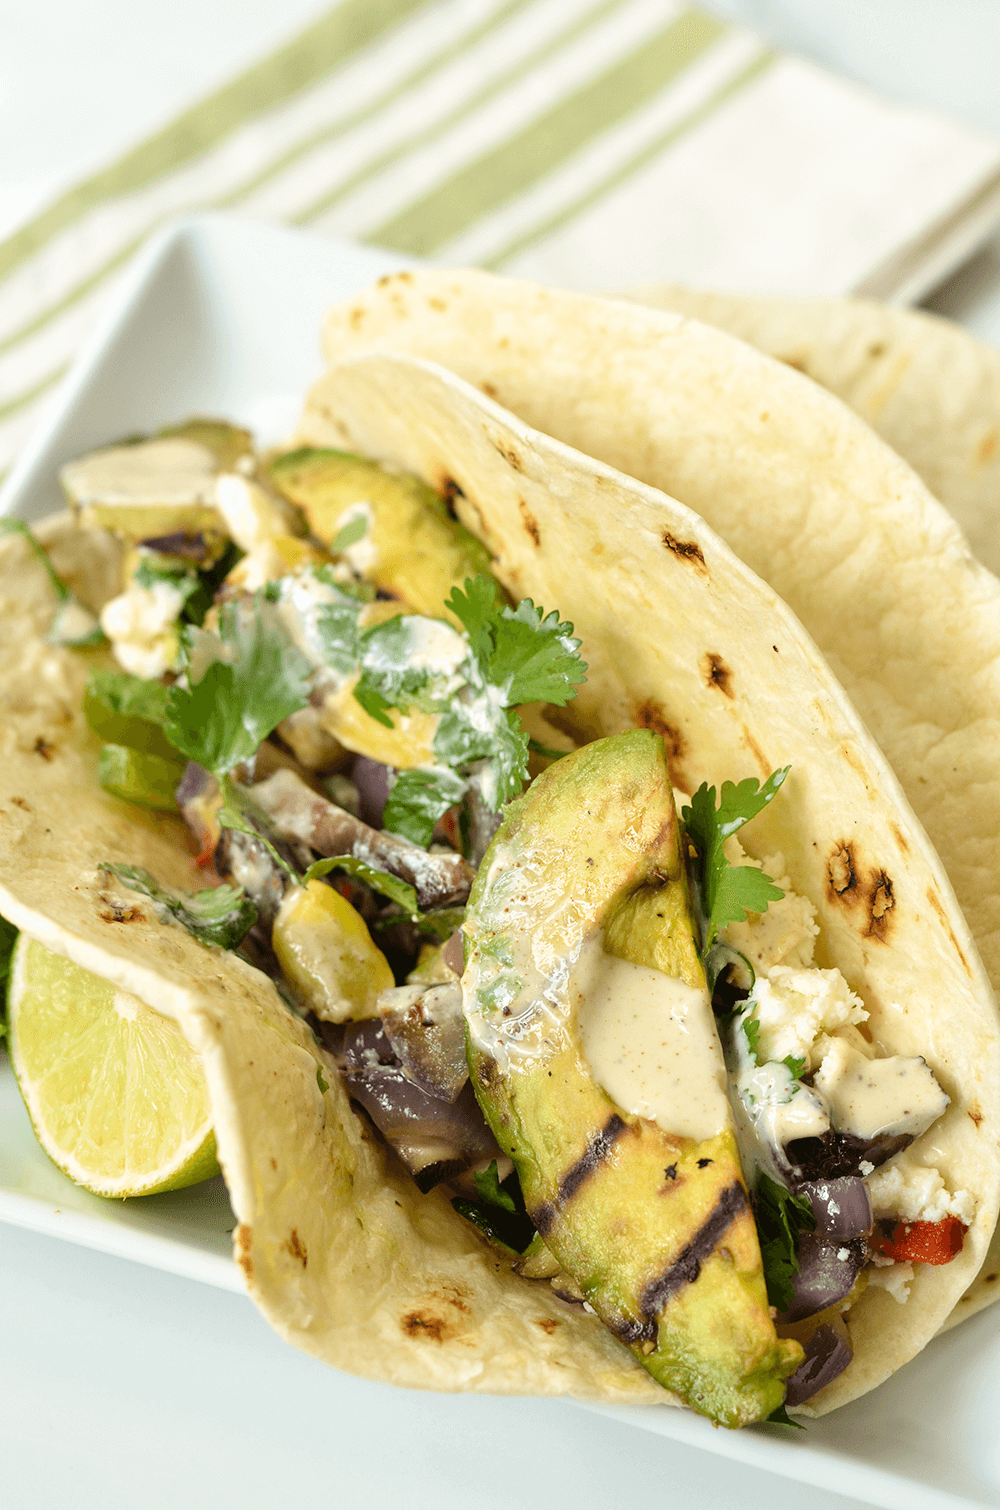 Grilled Avocado and Veggie Tacos